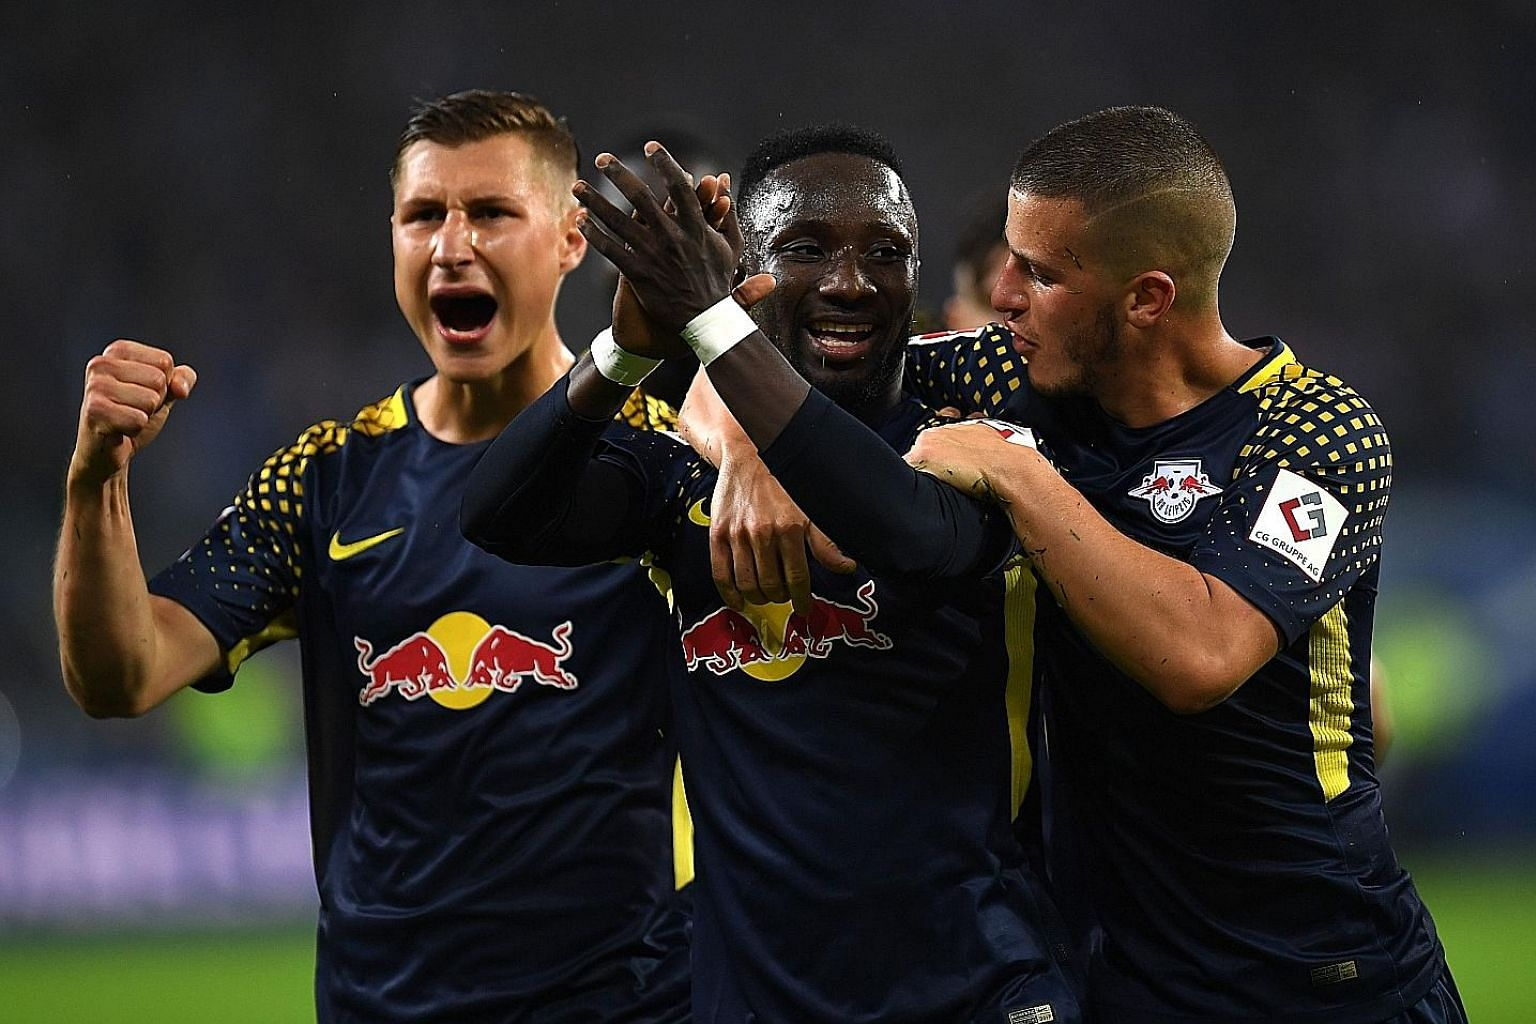 RB Leipzig's Naby Keita (centre) and his team-mates celebrating his opener against Hamburg last Saturday. This will be Leipzig's first Champions League outing.